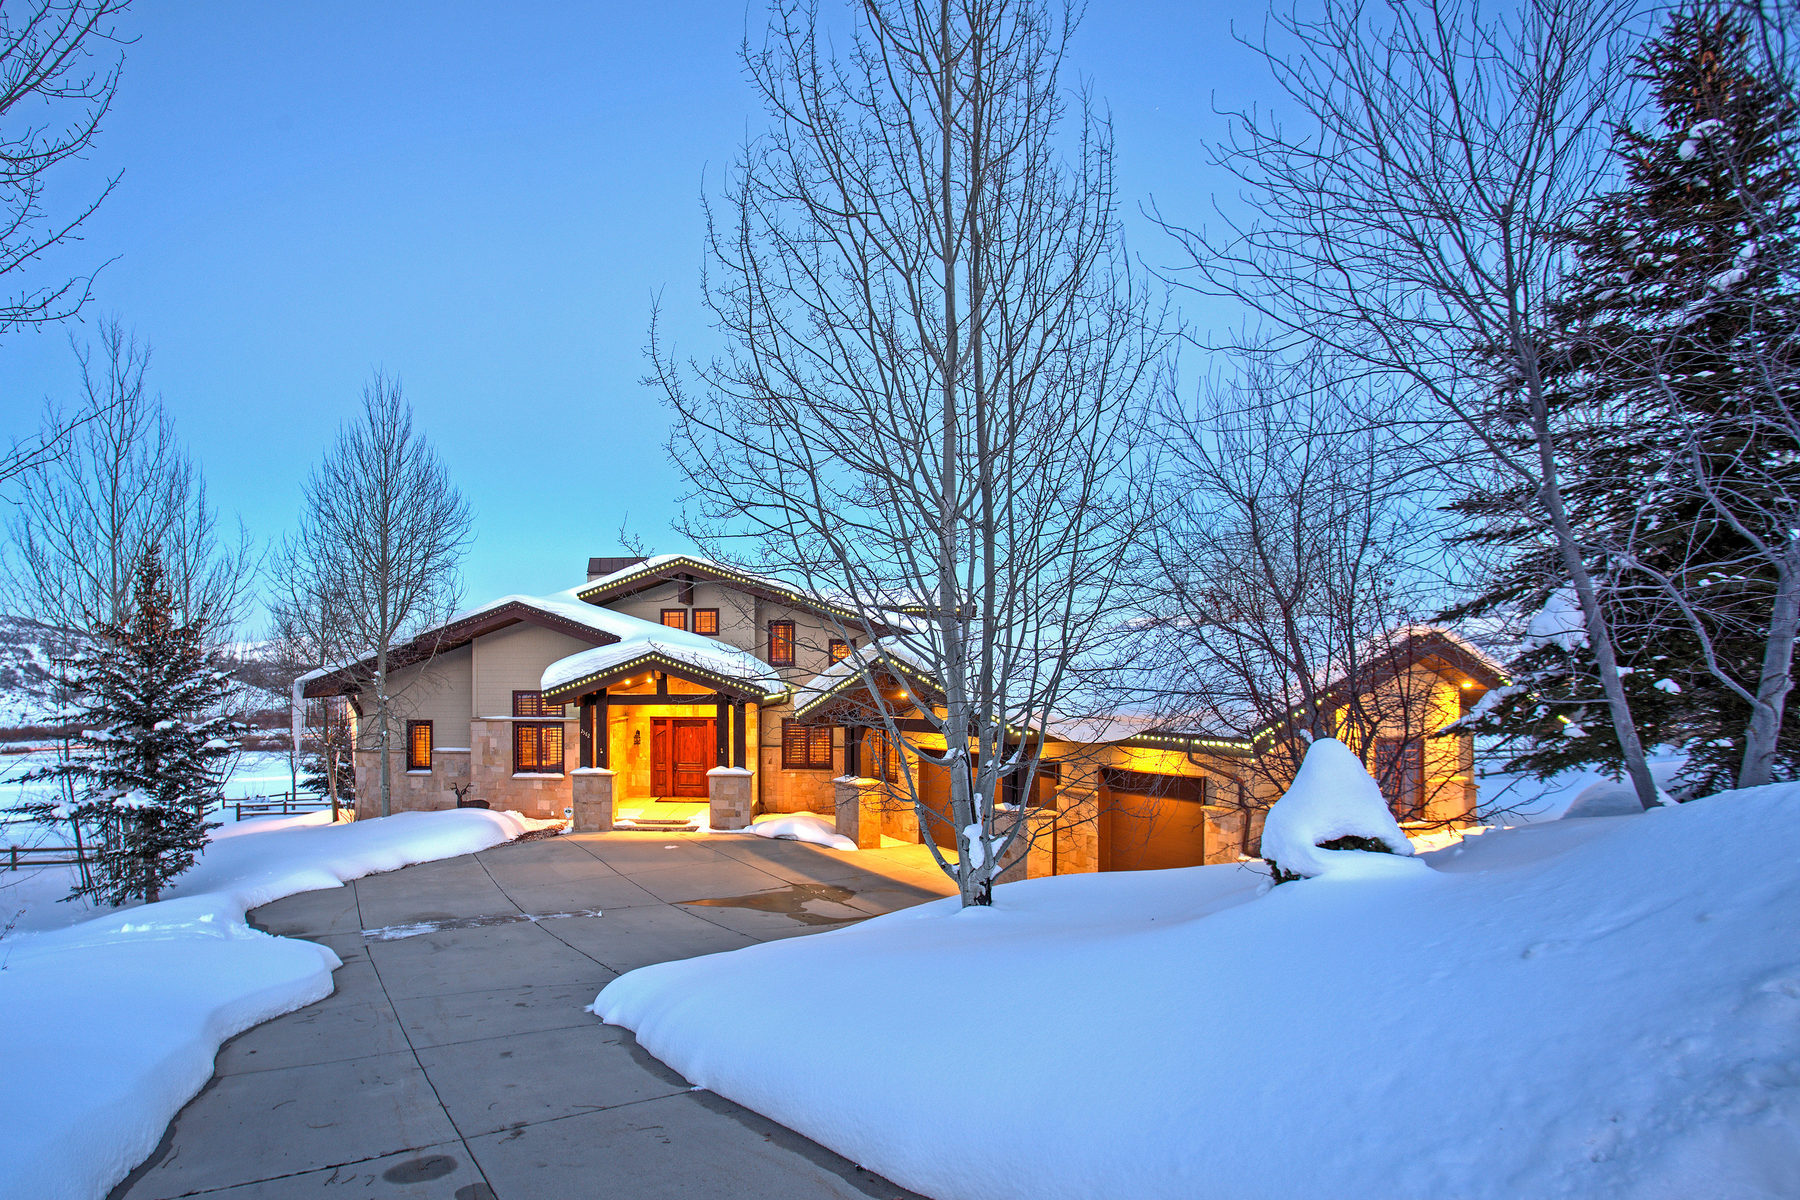 Casa Unifamiliar por un Venta en Stunning Entertainer's Residence in the Heart of Park City 2582 Aspen Springs Dr Park City, Utah, 84060 Estados Unidos